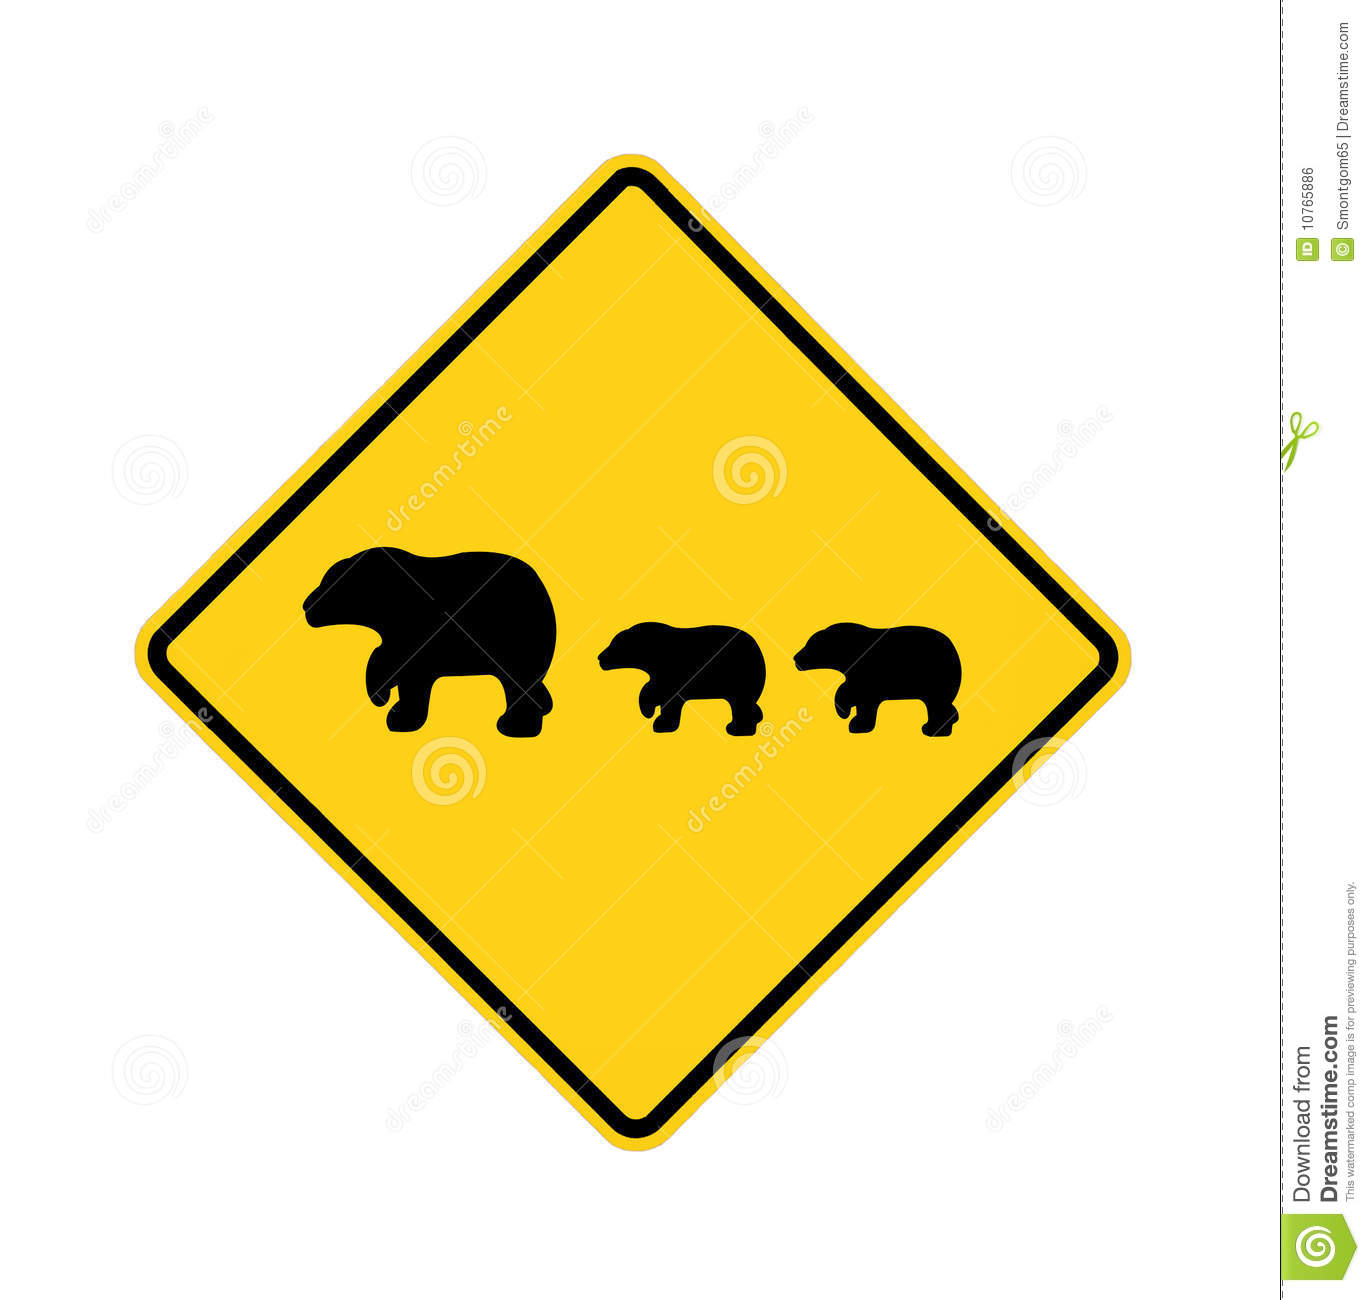 Road Sign - Bear Crossing Royalty Free Stock Image - Image: 10765886